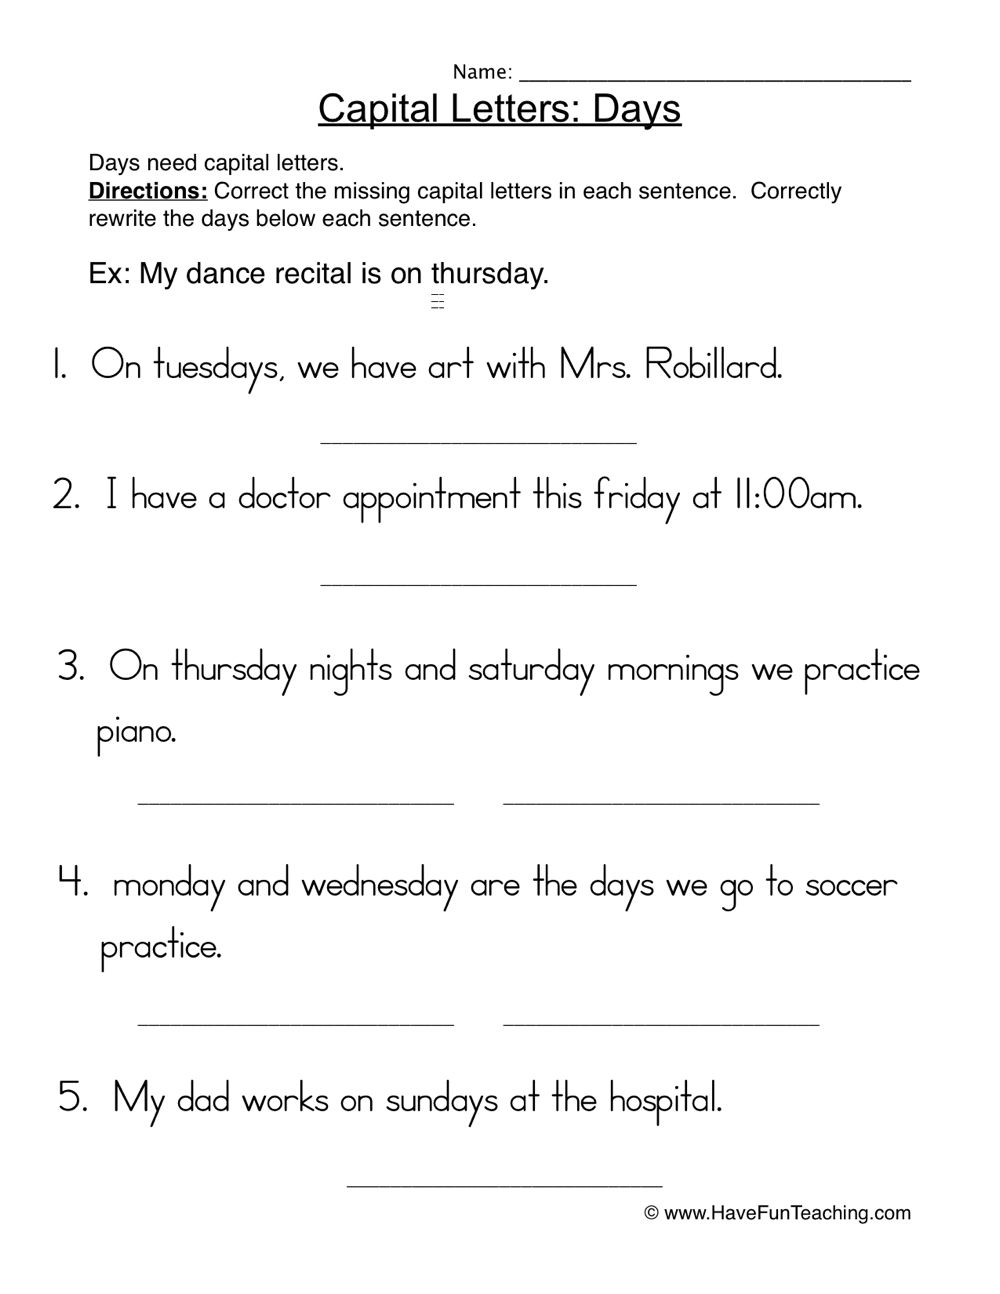 Worksheets • Have Fun Teaching   Capital letters worksheet [ 1294 x 1000 Pixel ]